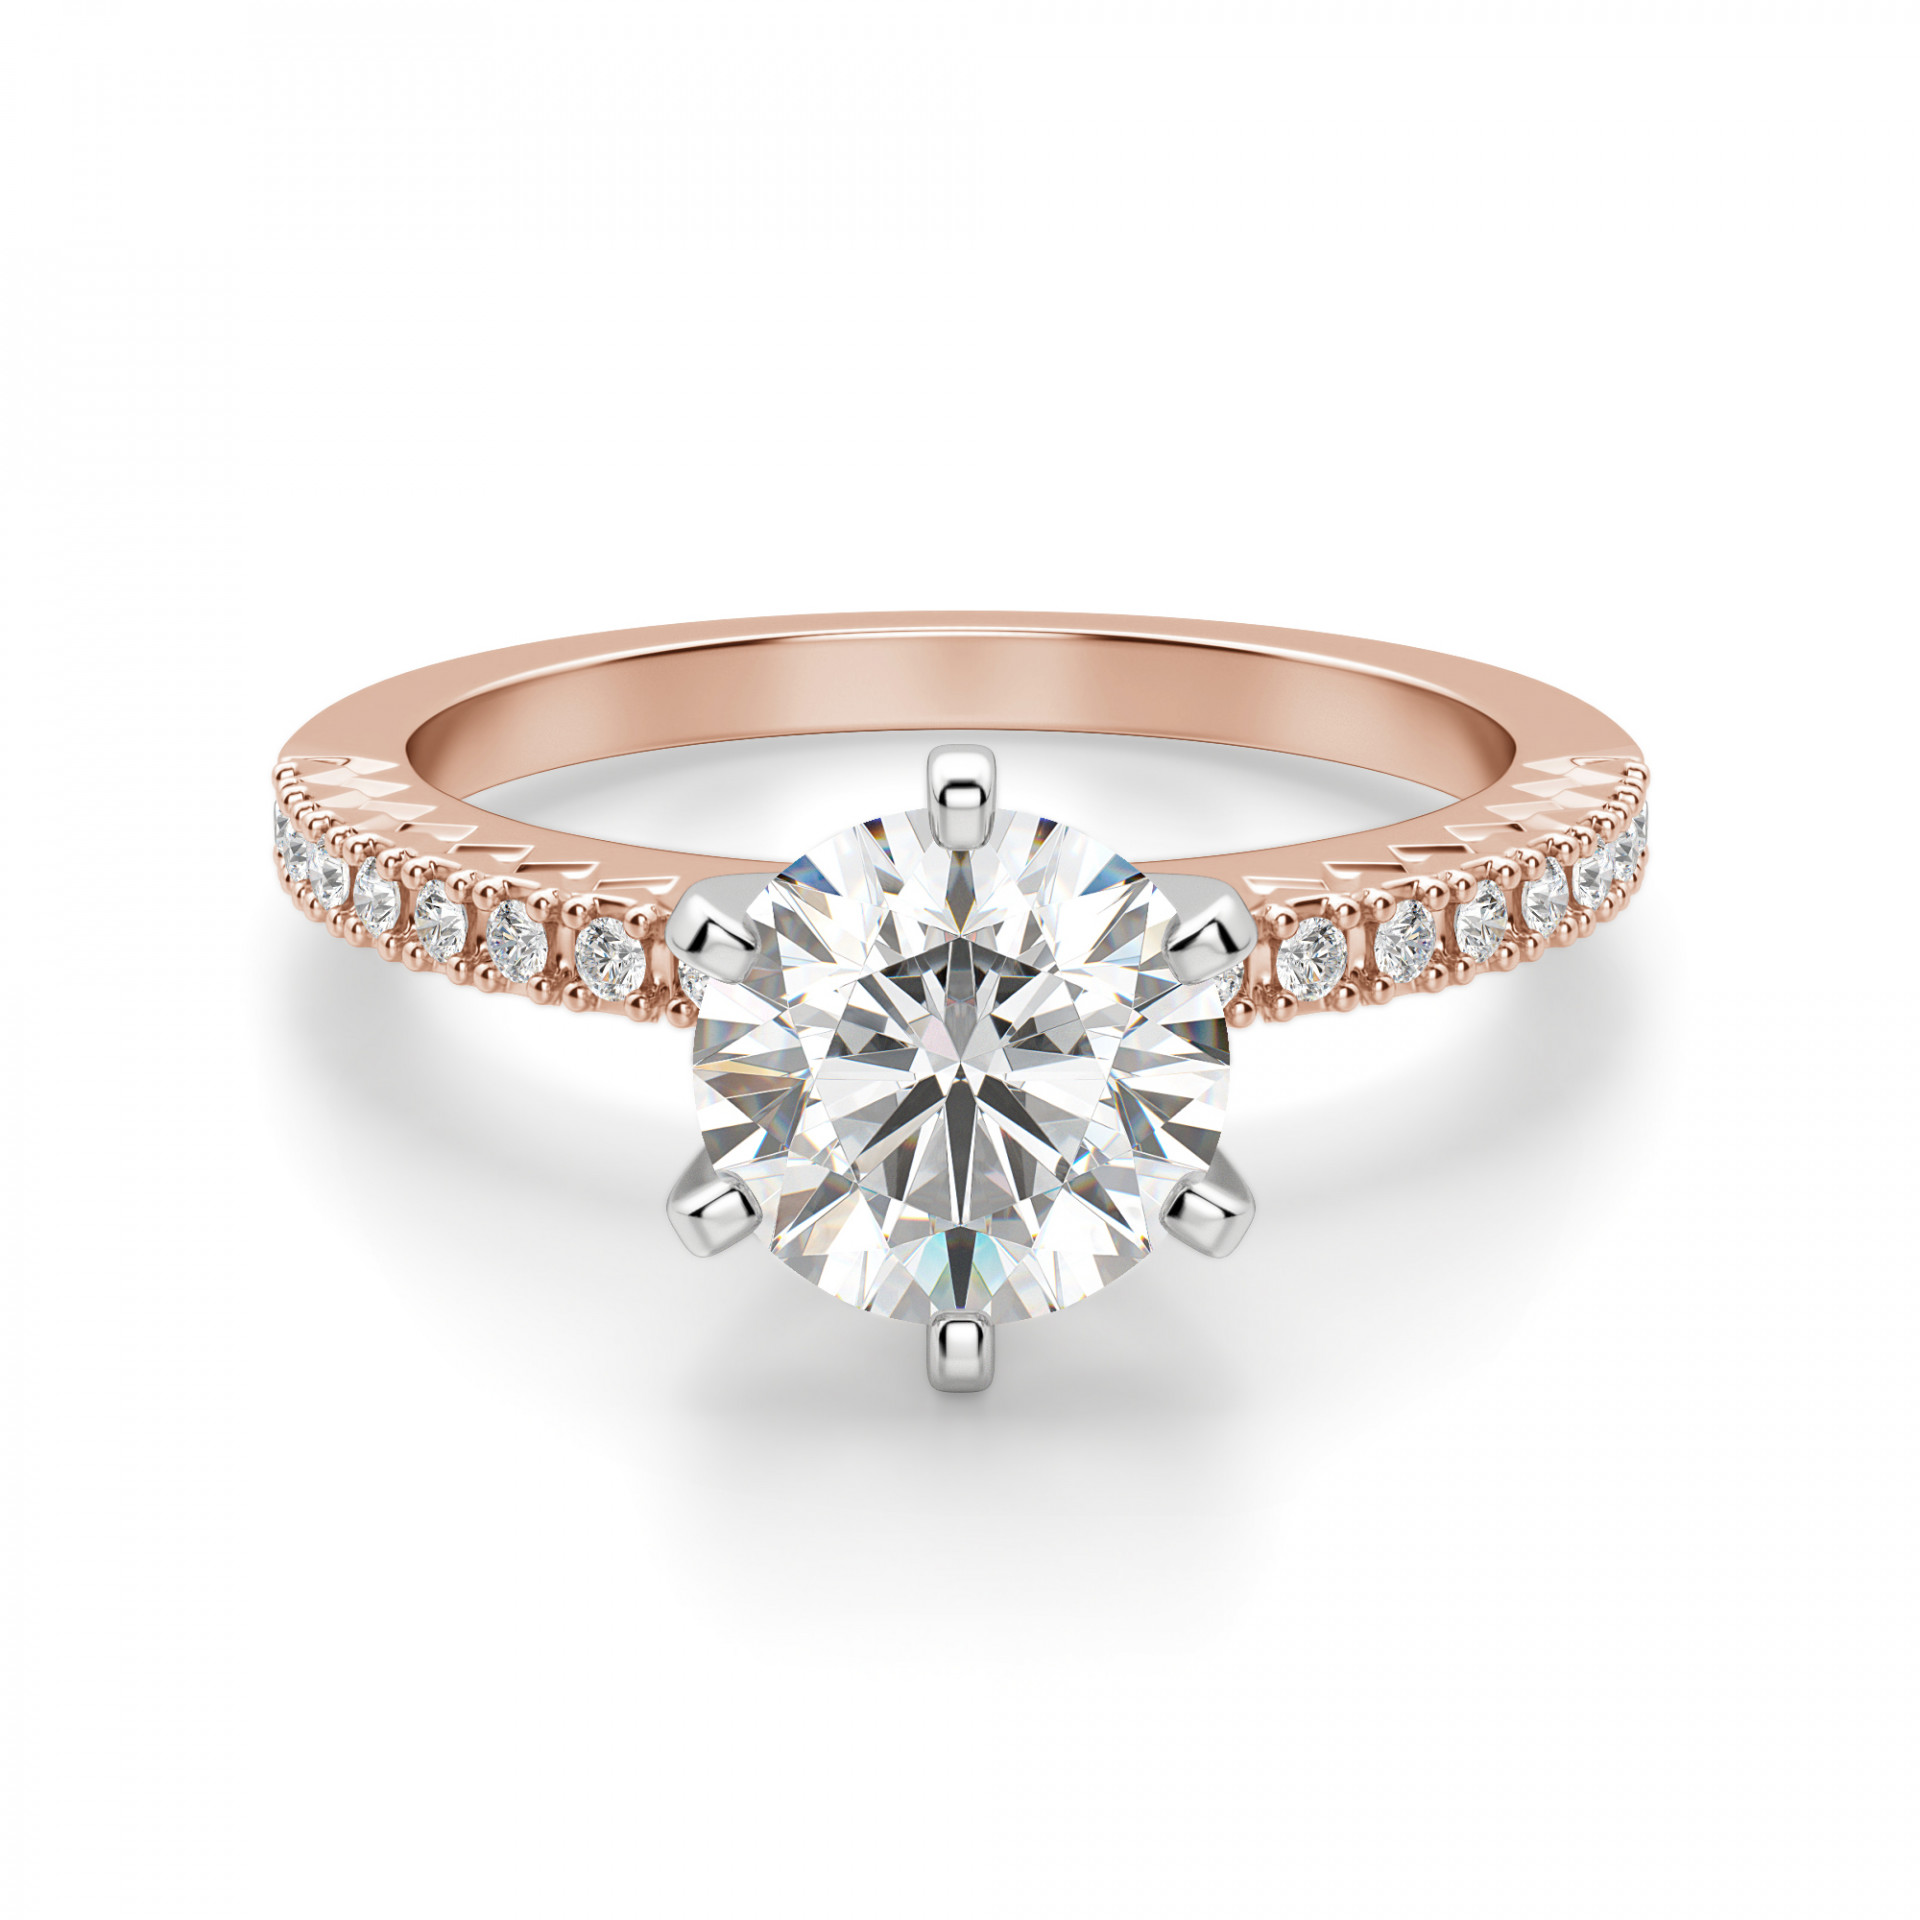 Engagement Rings Round Cut: Angelix Round Cut Engagement Ring